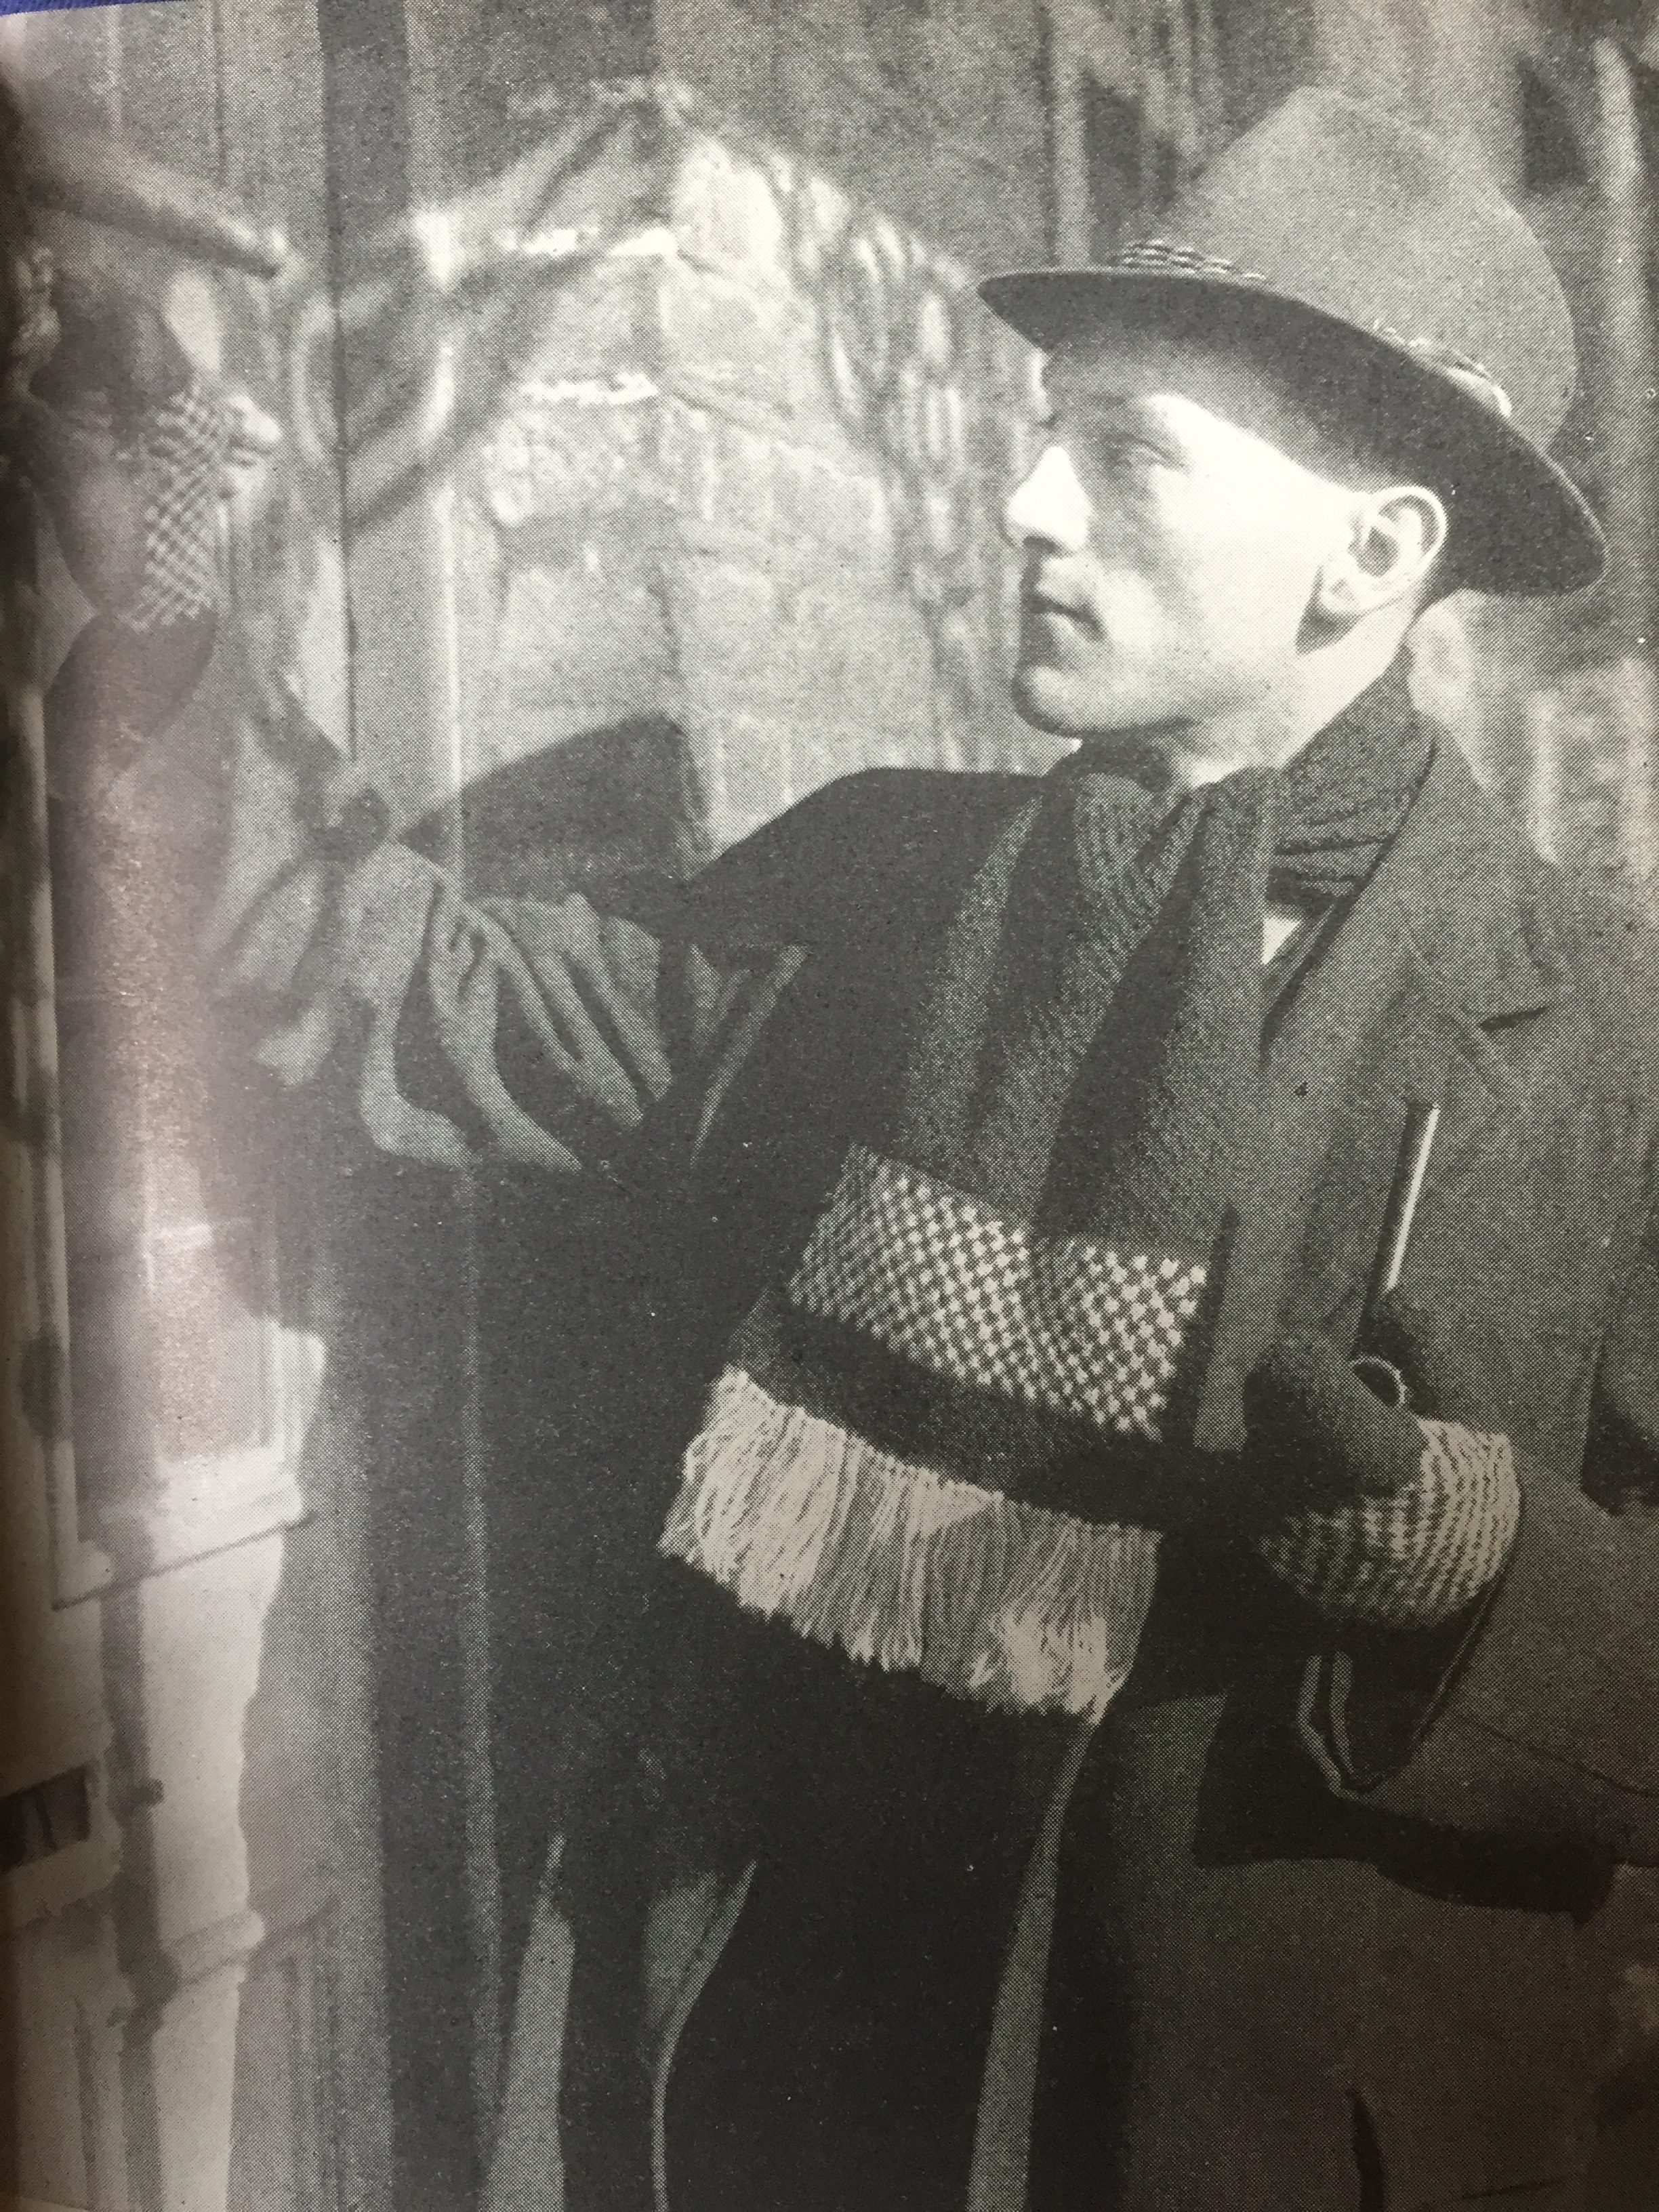 vintage photo of male knitwear model knocking on door with pipe in hand